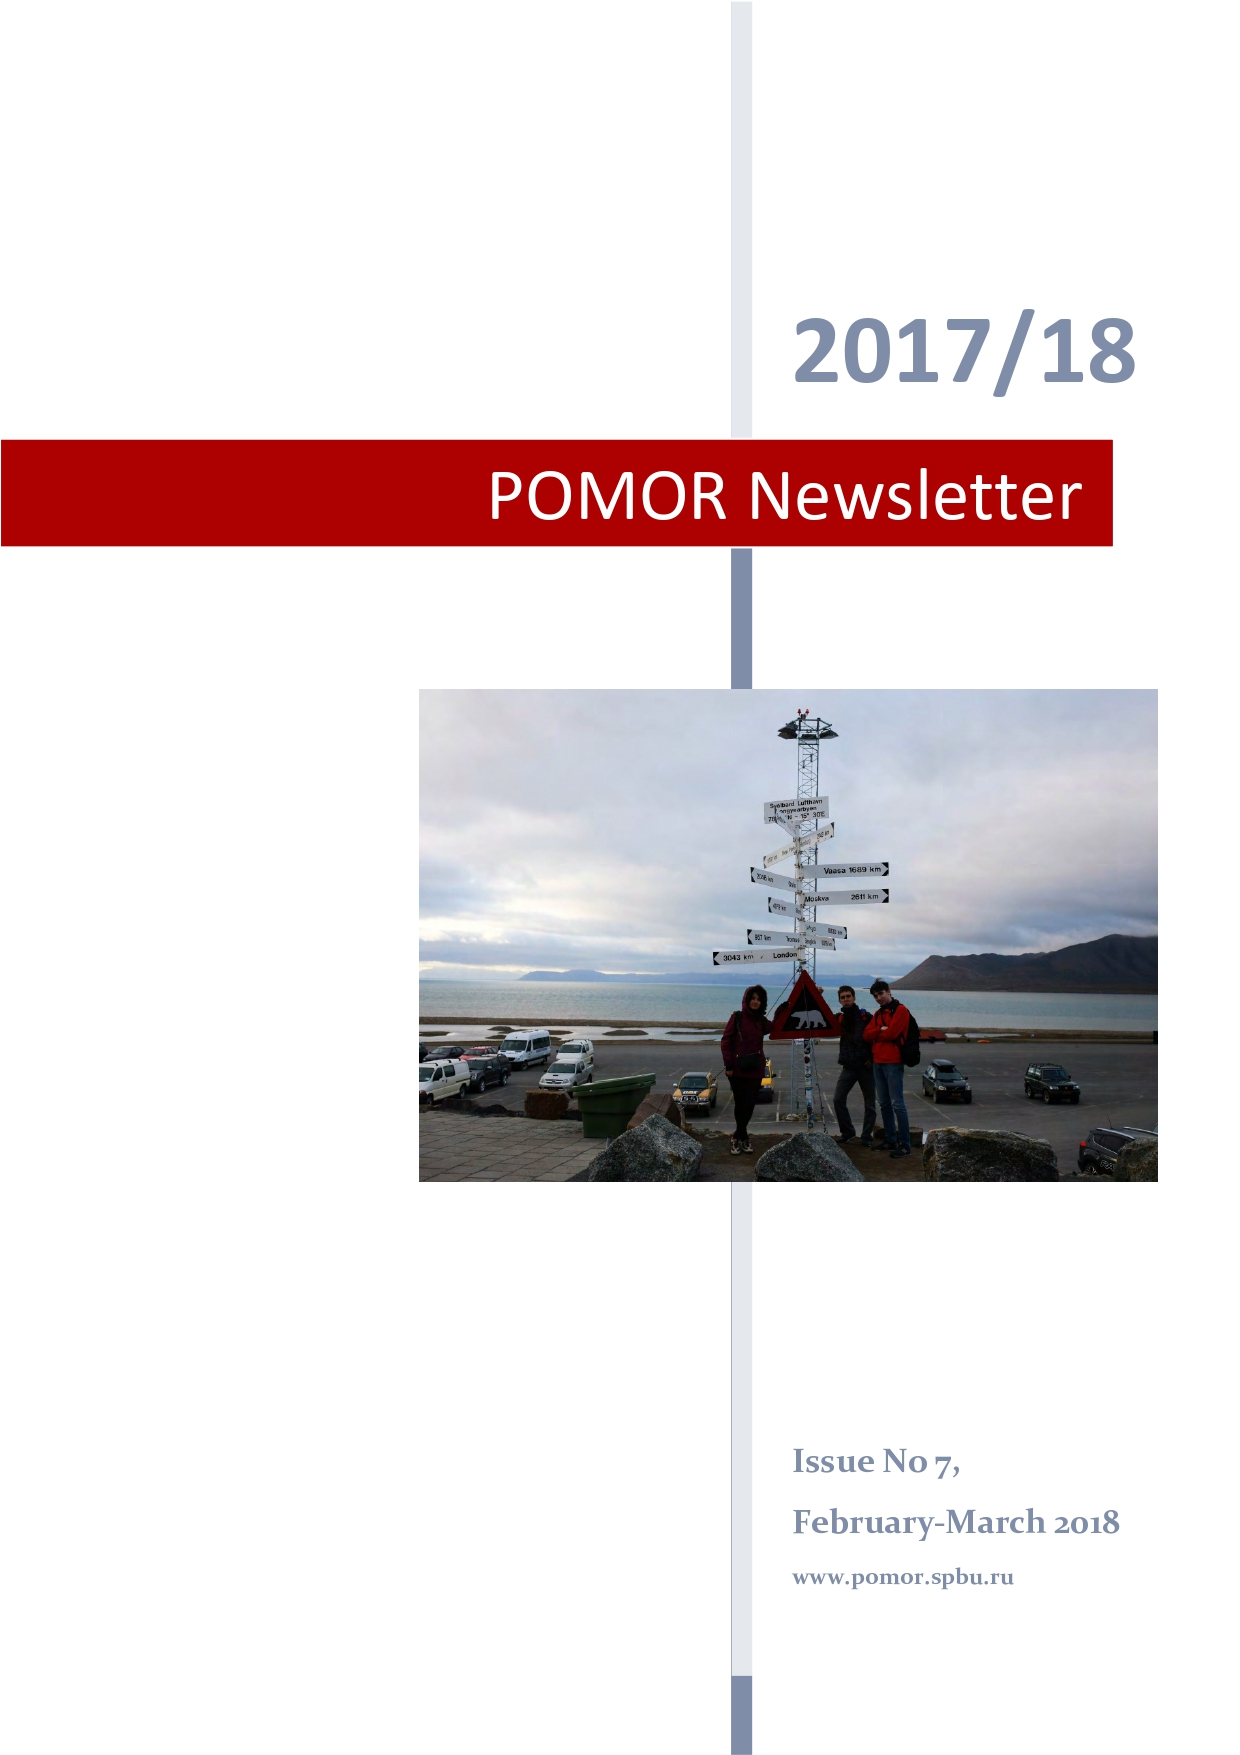 POMOR Newsletter 7 1 page 0001